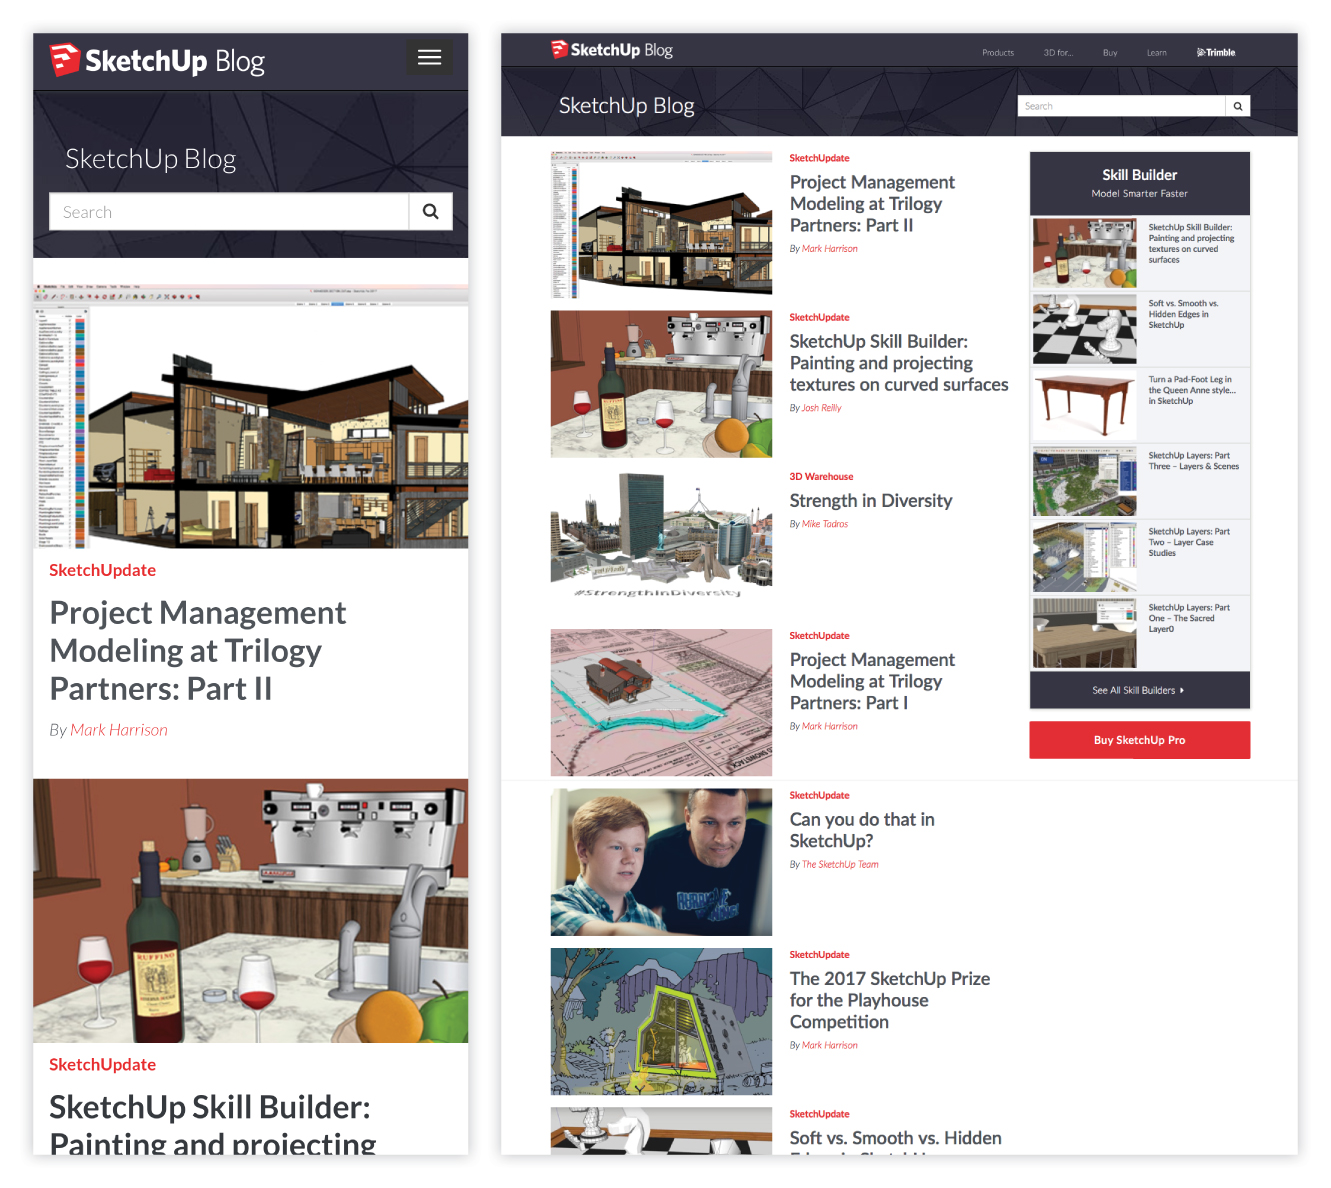 SketchUp Blog Case Study and Redesign 1 of 6